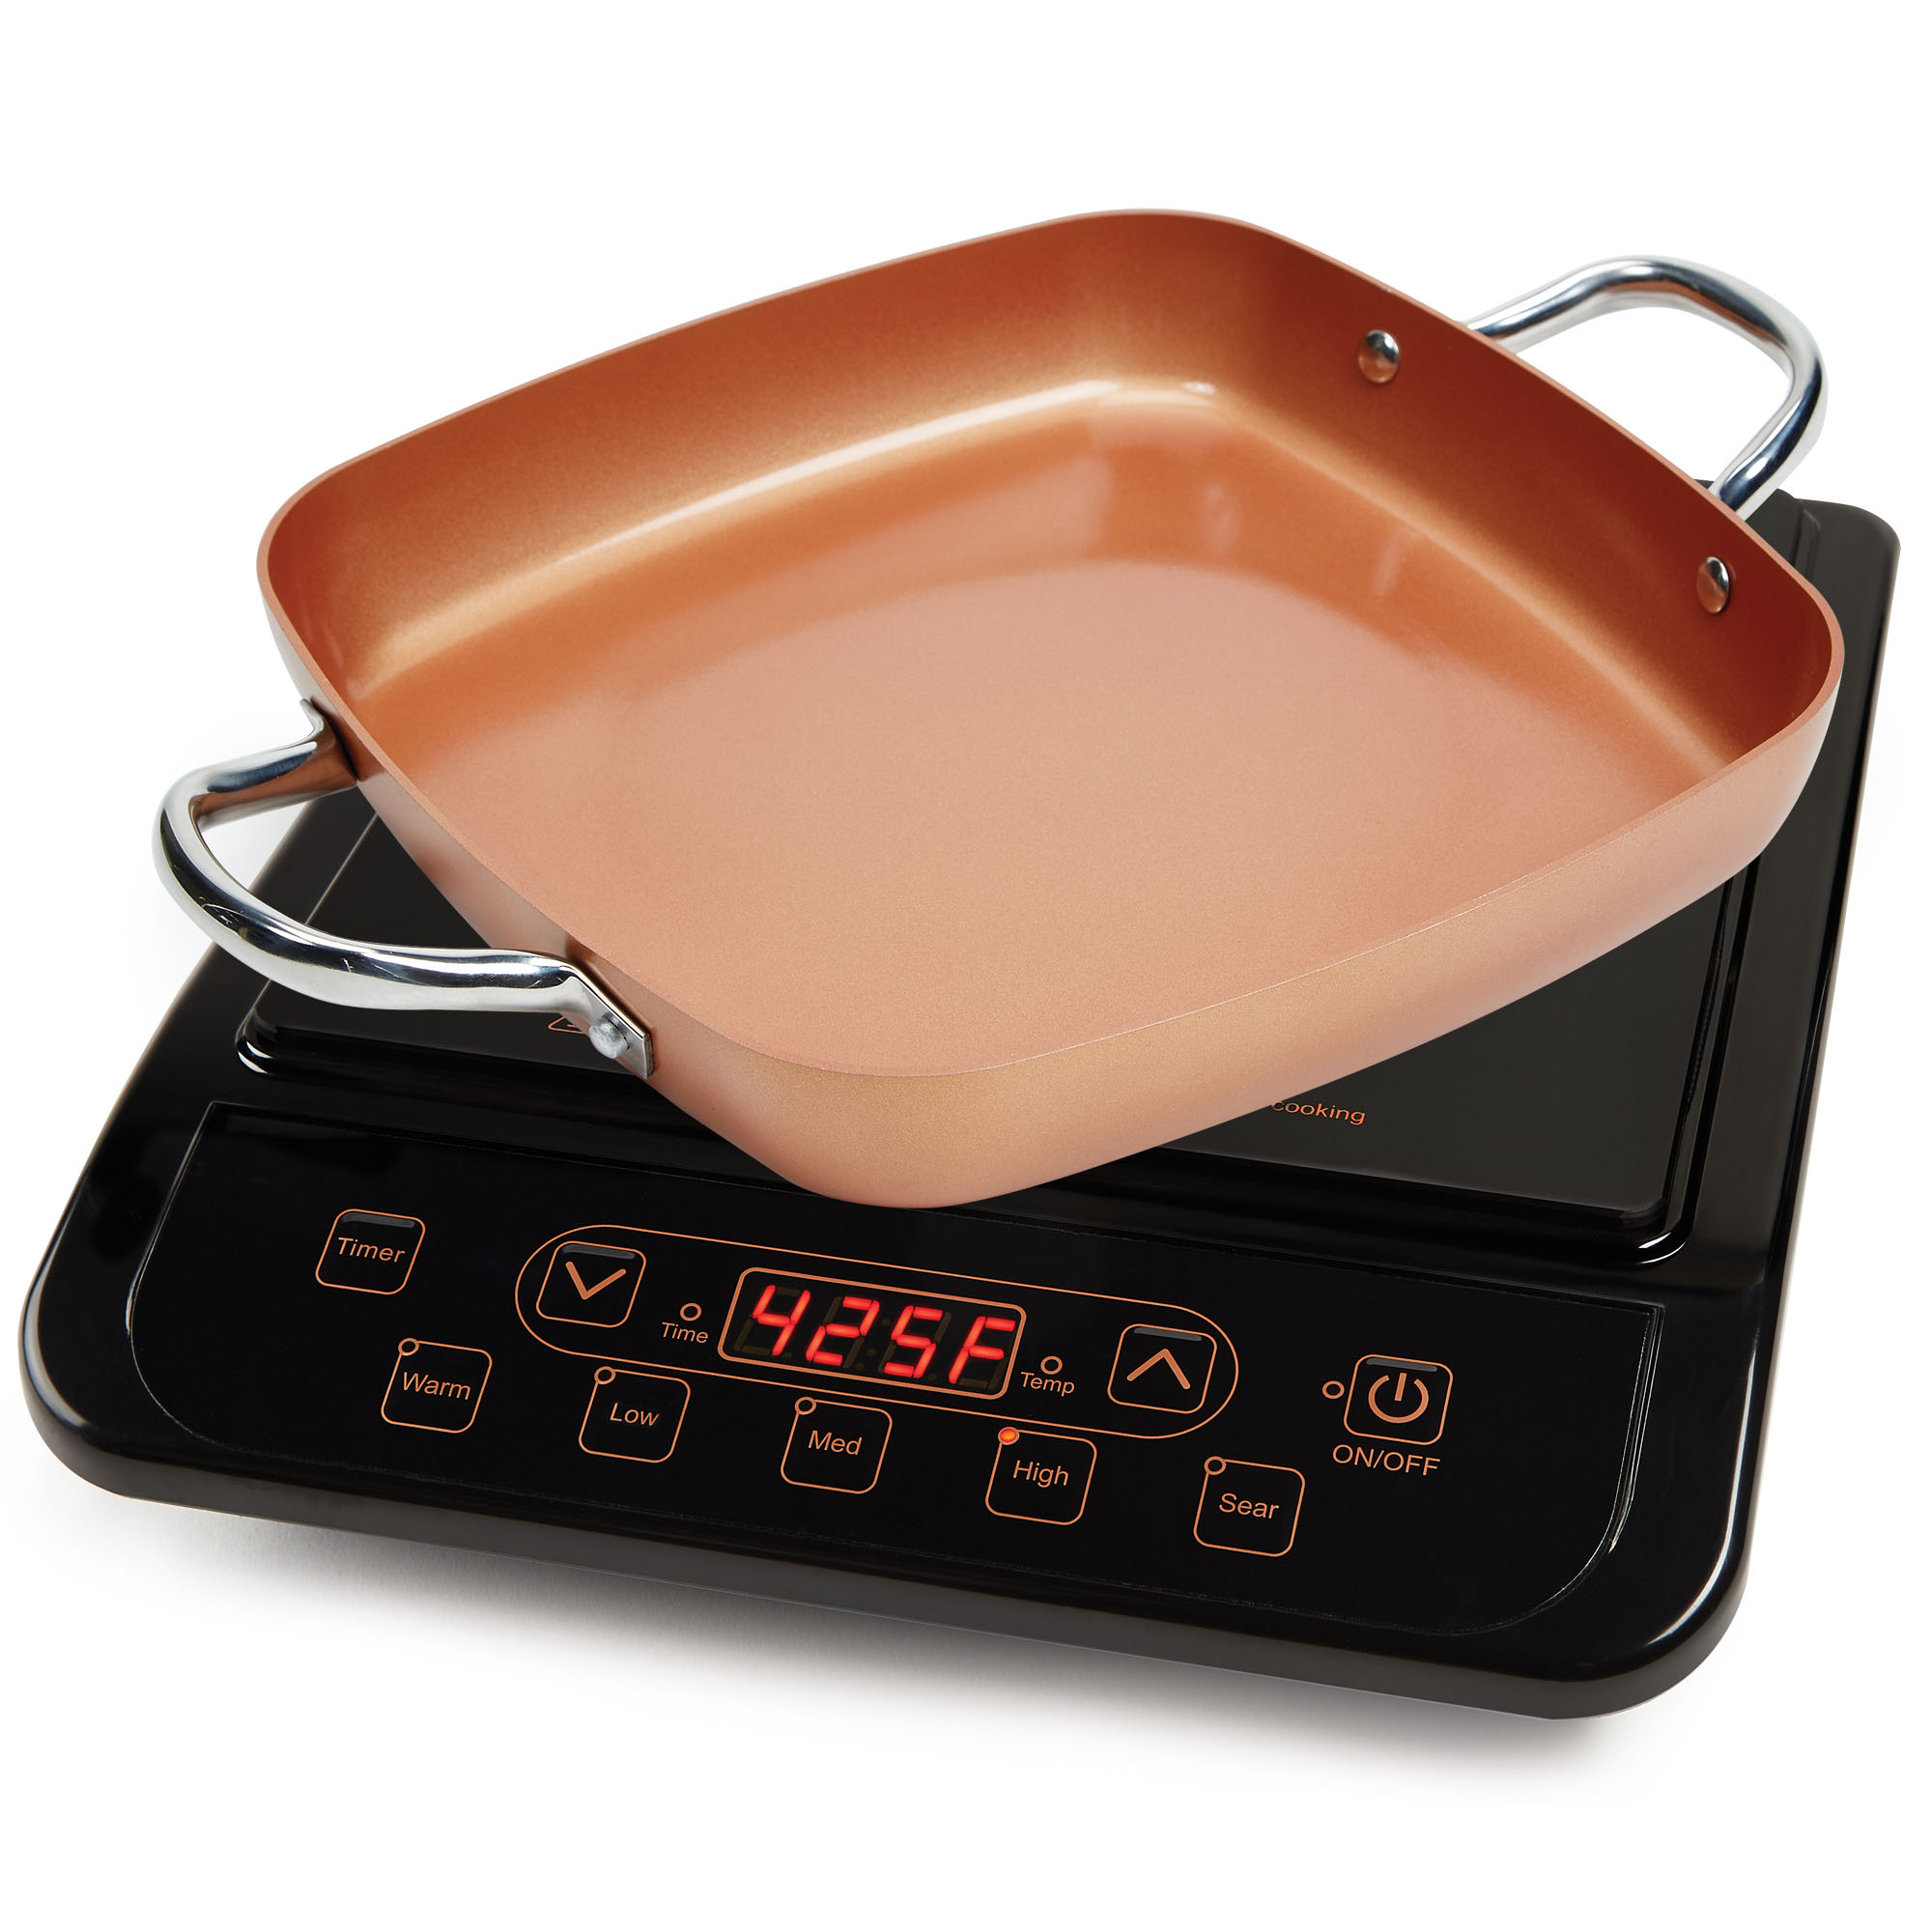 Copper Chef Stainless Steel Cerami-Tech Non-Stick Coating Power Induction Cooktop, 1 Each